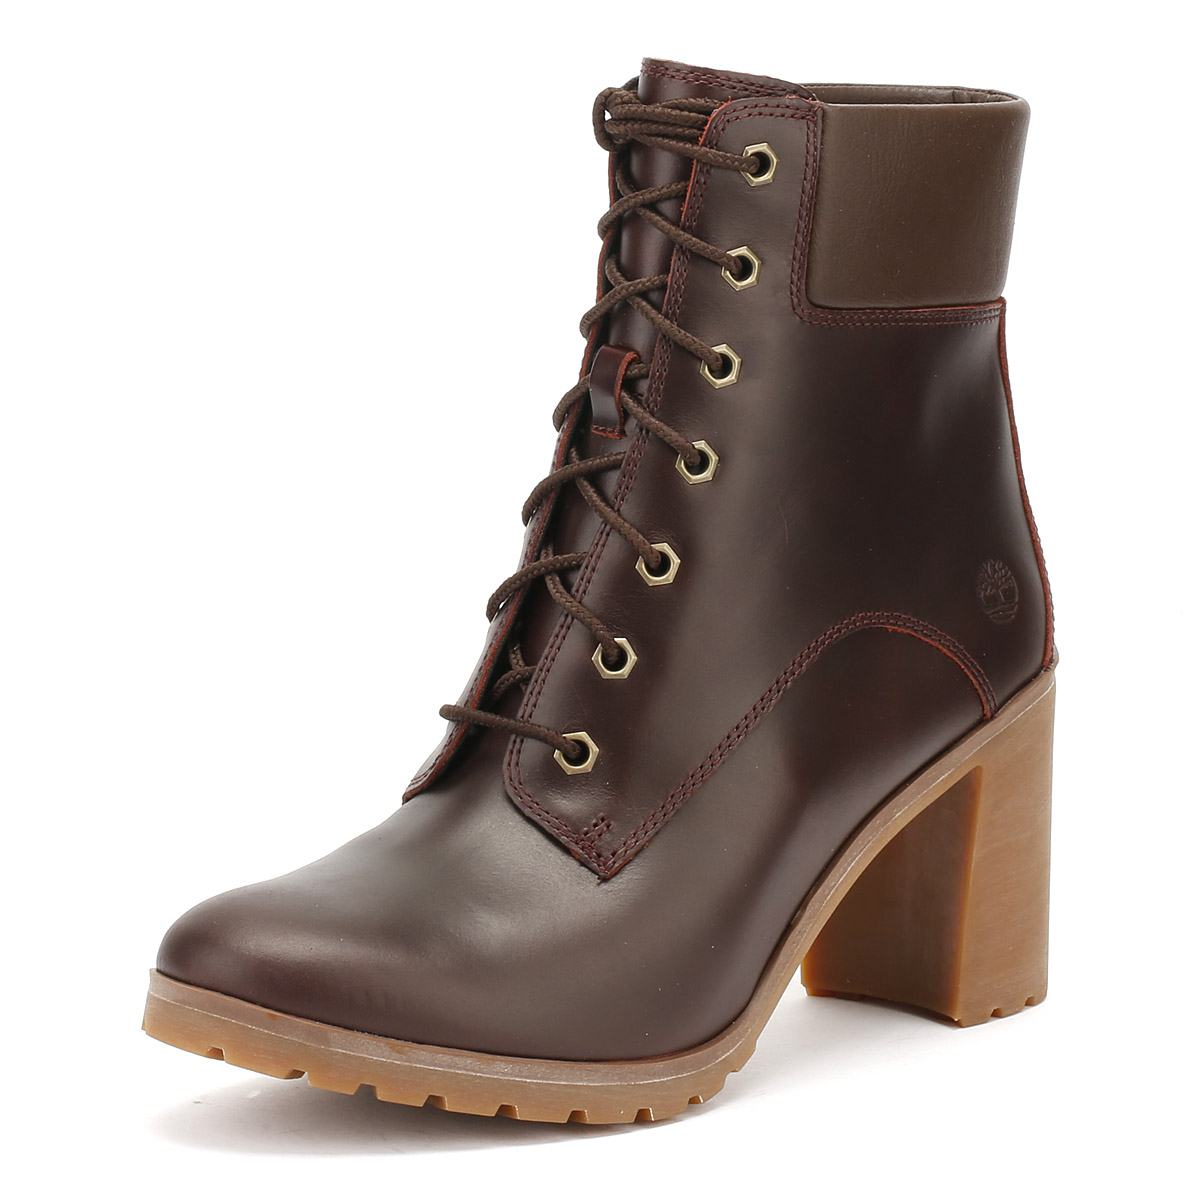 Details about Timberland Womens 6 Inch Boots Redwood Burgundy Allington Mid  Heel Winter Shoes 5d727dfff6